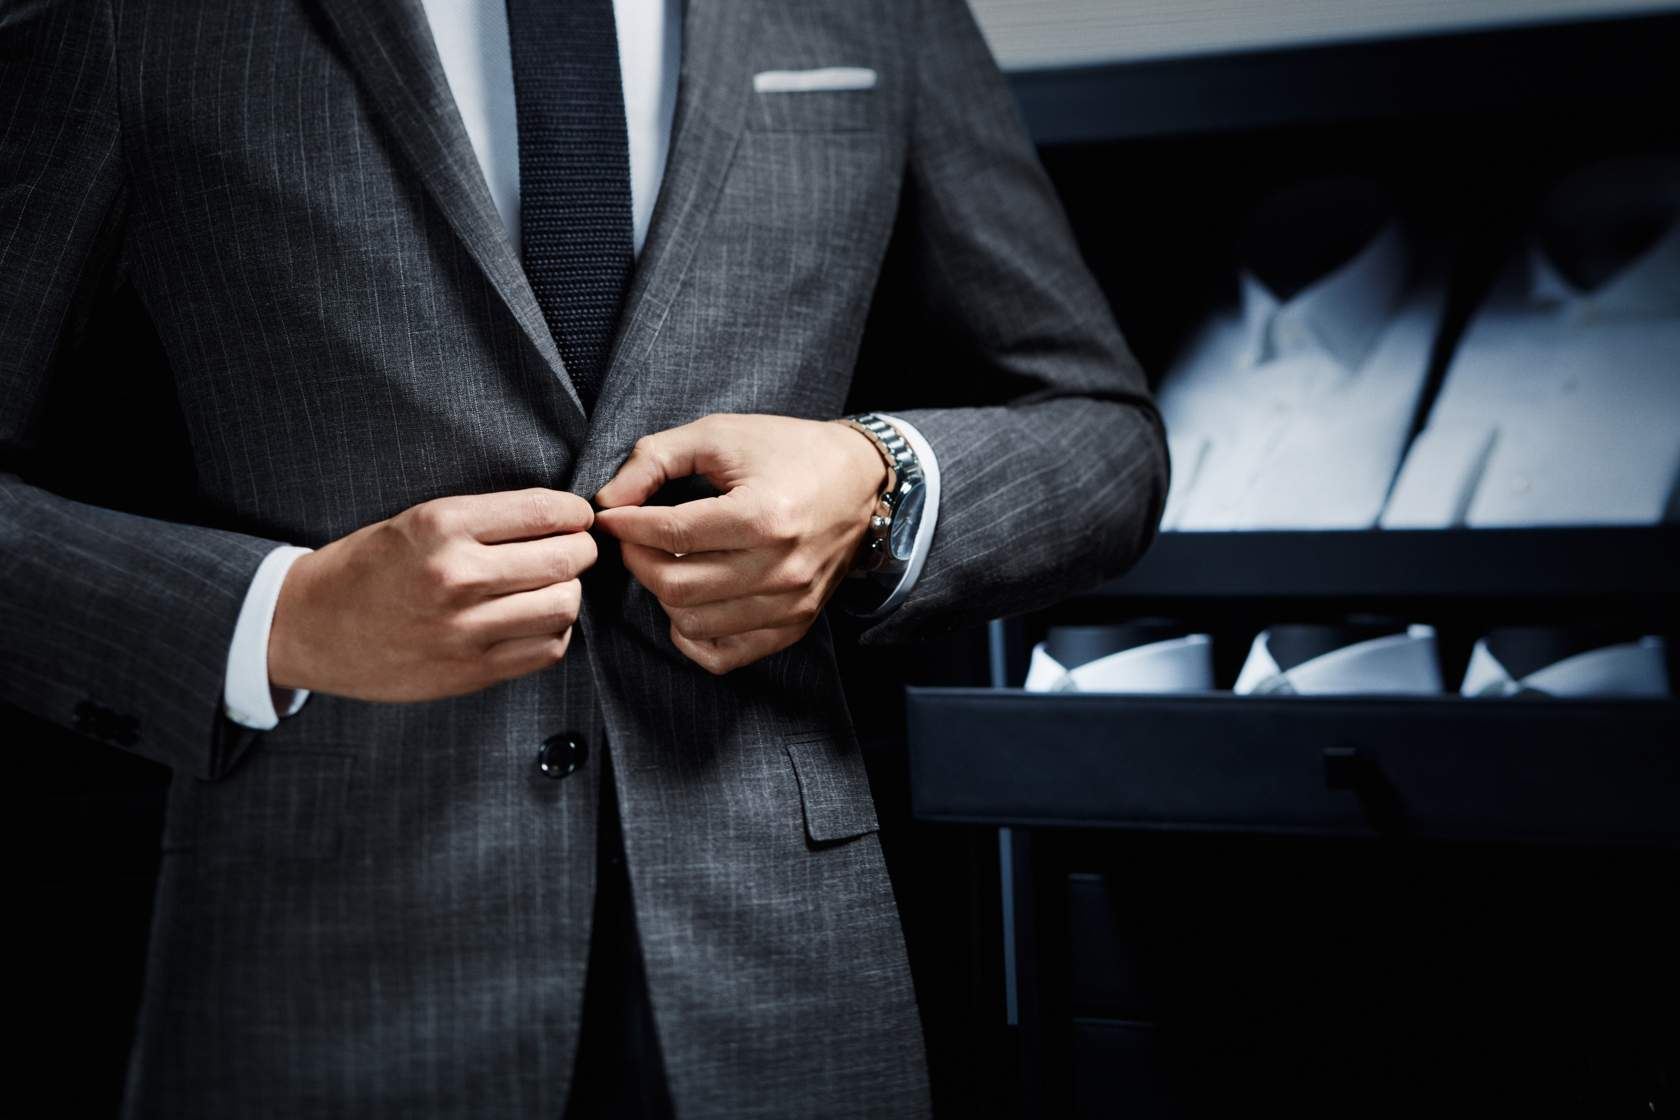 Gray Striped Suit, Black And And Silver Watch By Boss